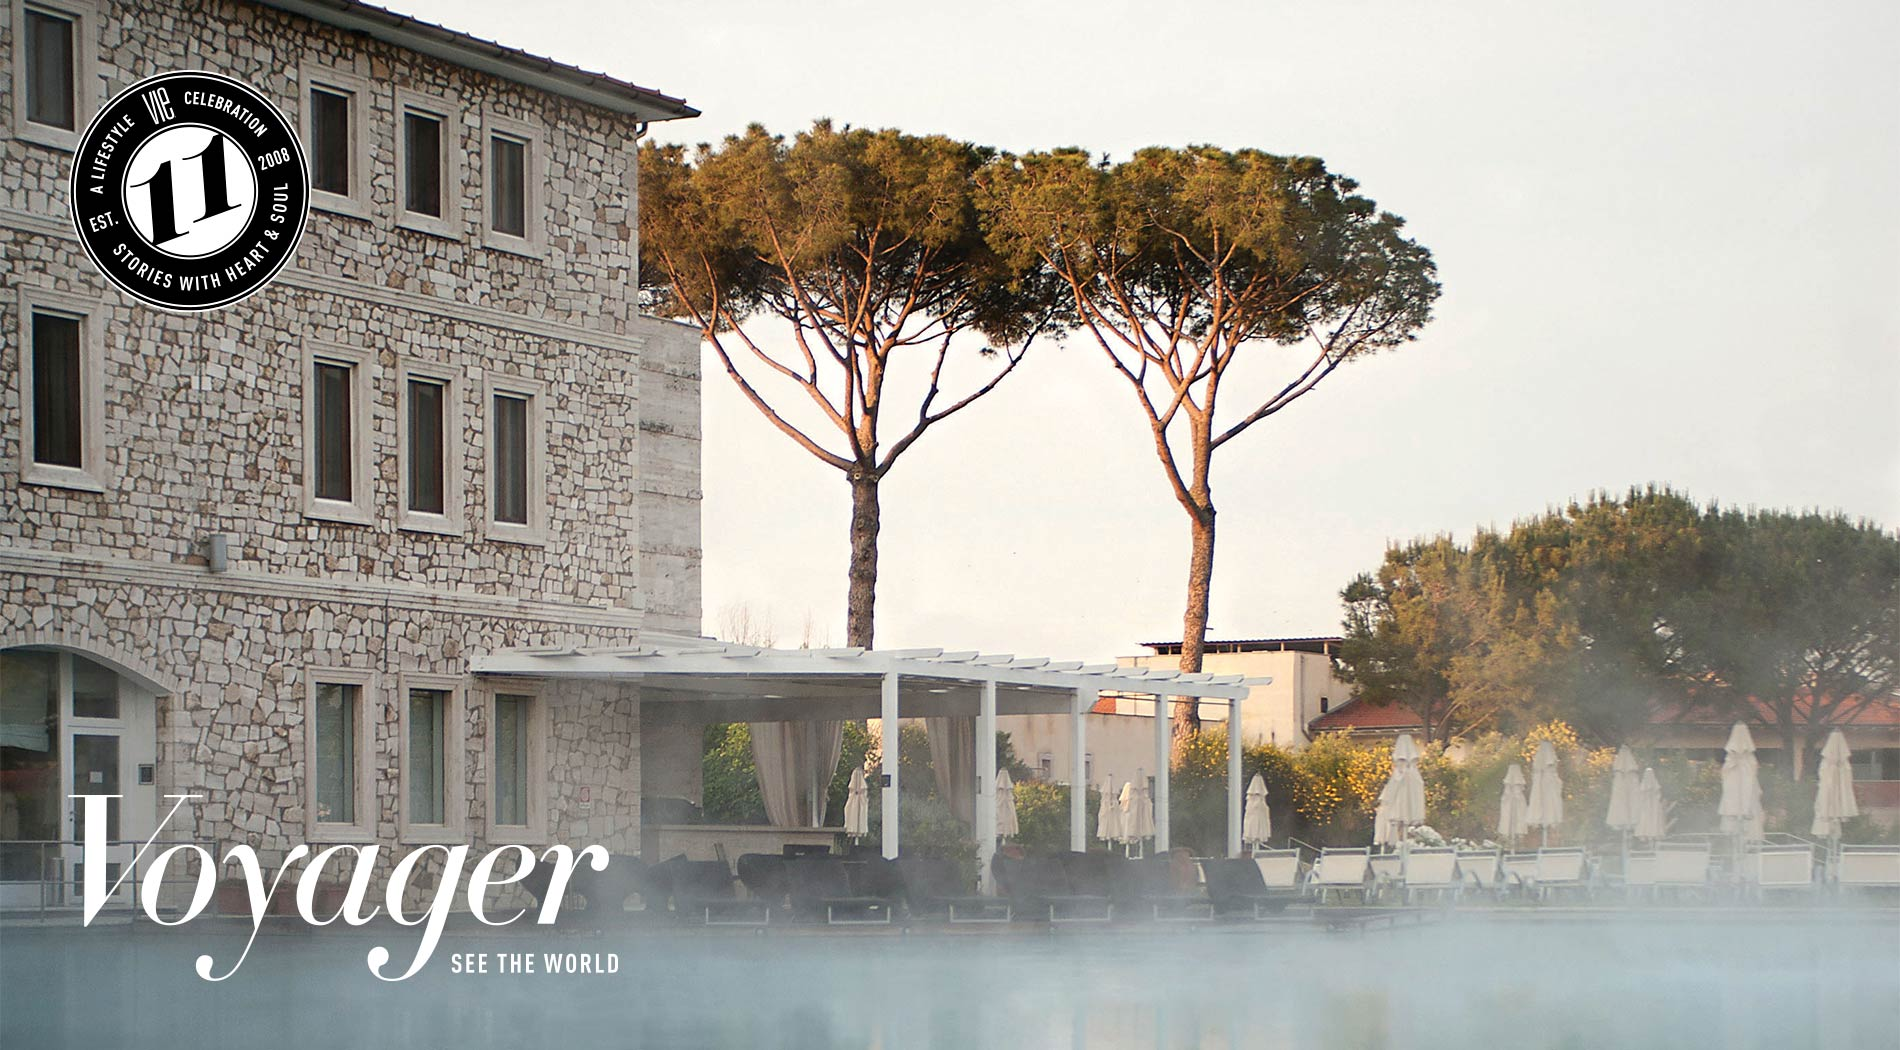 VIE Magazine February 2019 Luxury Homes & Technology Issue - Voyager